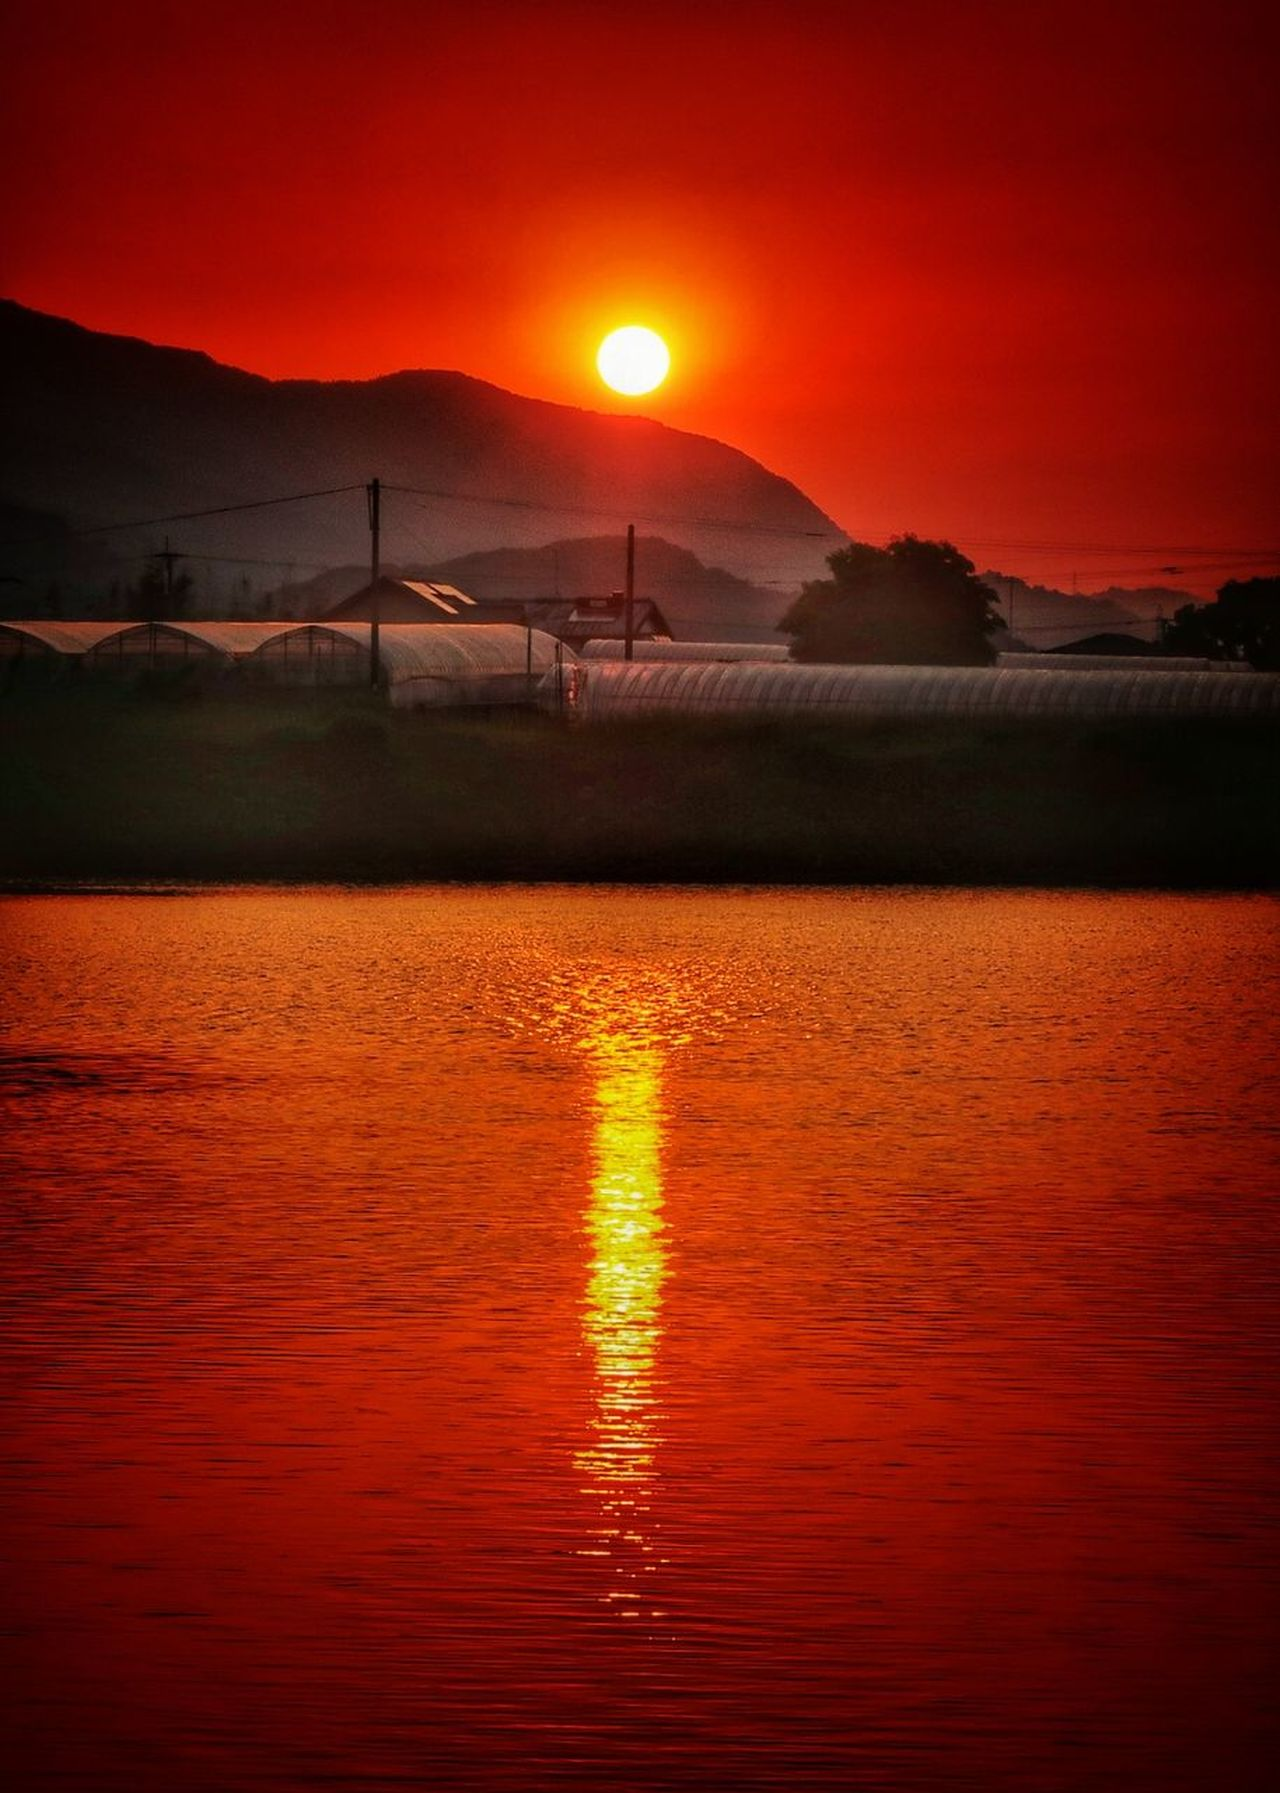 朝日 日の出 水面 空 池 湖 ビニールハウス 鏡 Farm Lake Water Reflection Reflection Sunlight Sunrise Sunset Sun Orange Color Beauty In Nature Beautiful View EyeEm Nature Lover EyeEm Best Shots Nature Morning Sun Morning